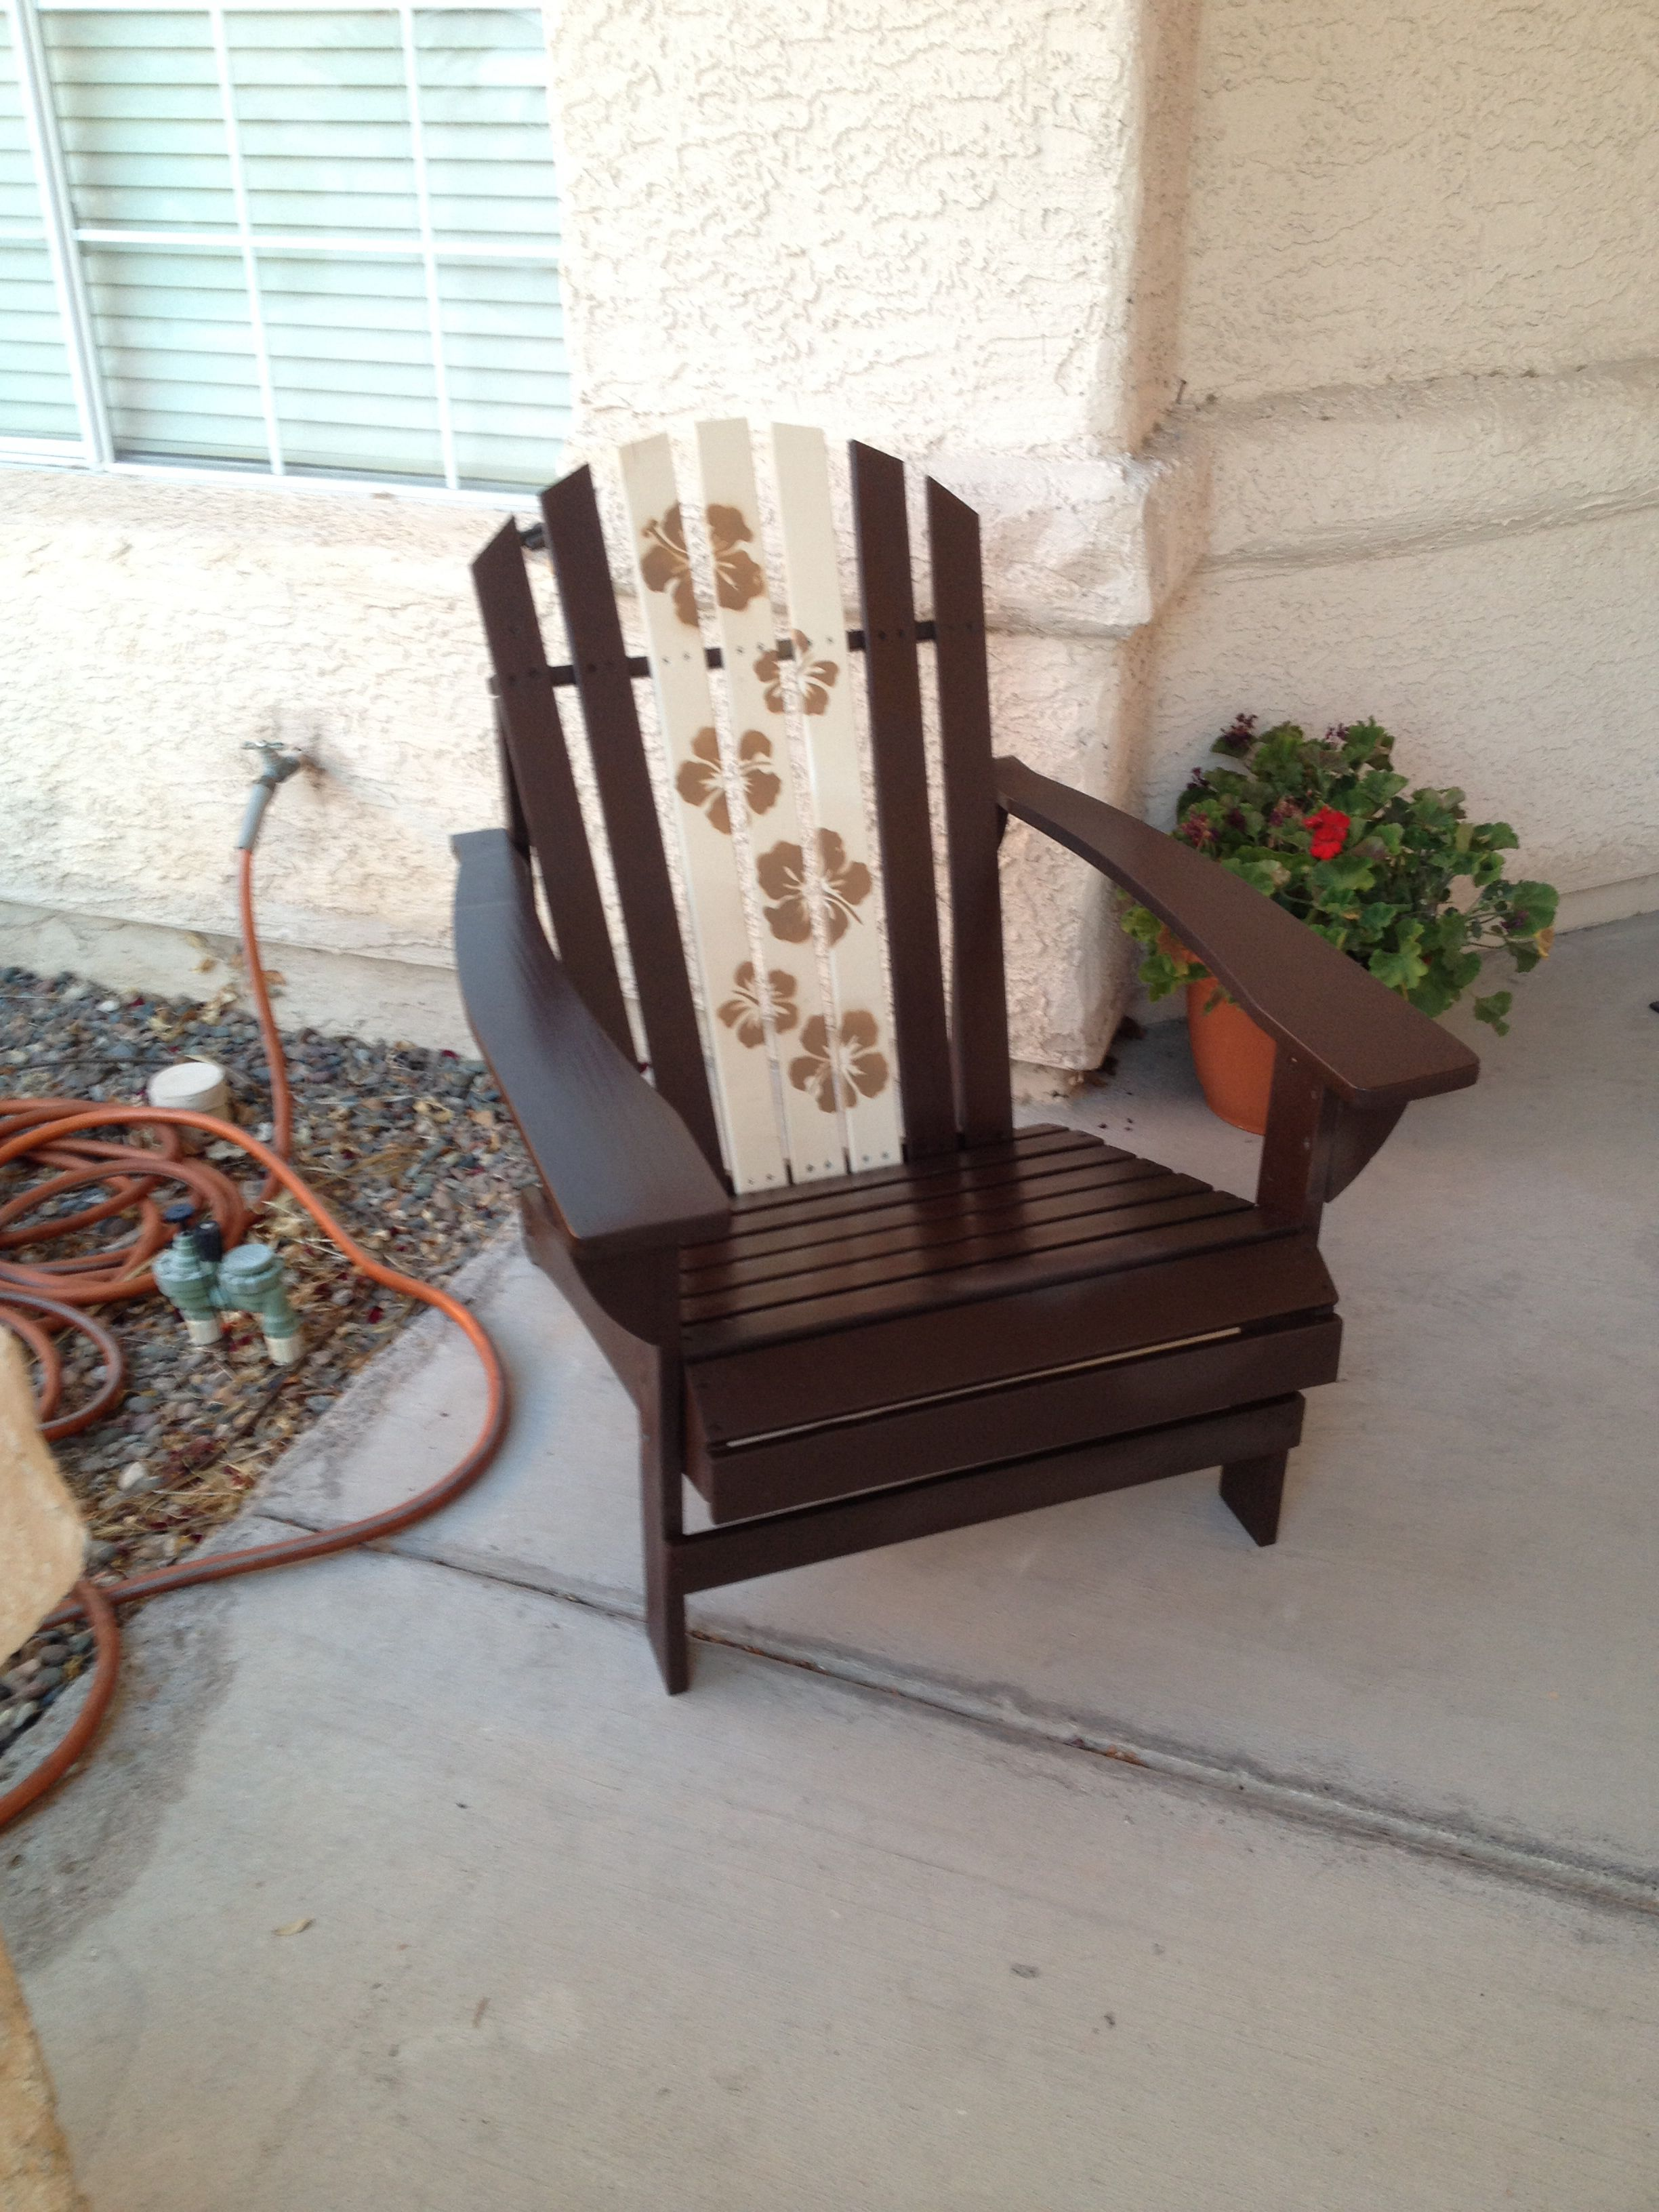 Home Depot pine Adirondack chair kit for $38 A couple cans of